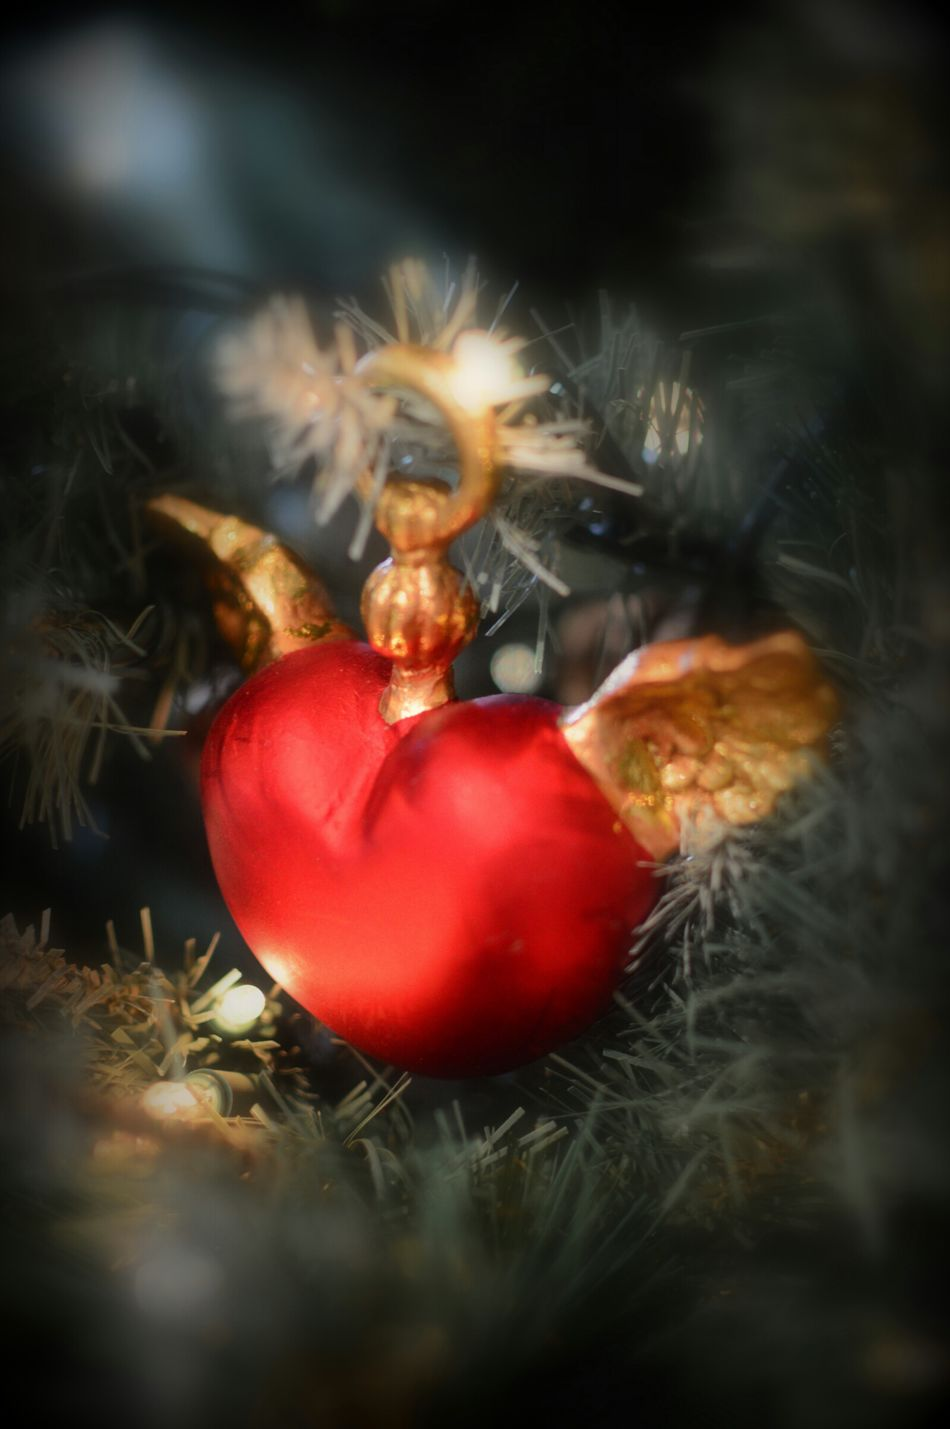 """""""On the first day of Christmas my true love gave to me, 1 gold winged heart. """" :) ♥ ♥ ♥ Heart Heart ❤ Hearts Christmas Decorations Xmas Christmas Tree Gifts ❤ Special Gift"""